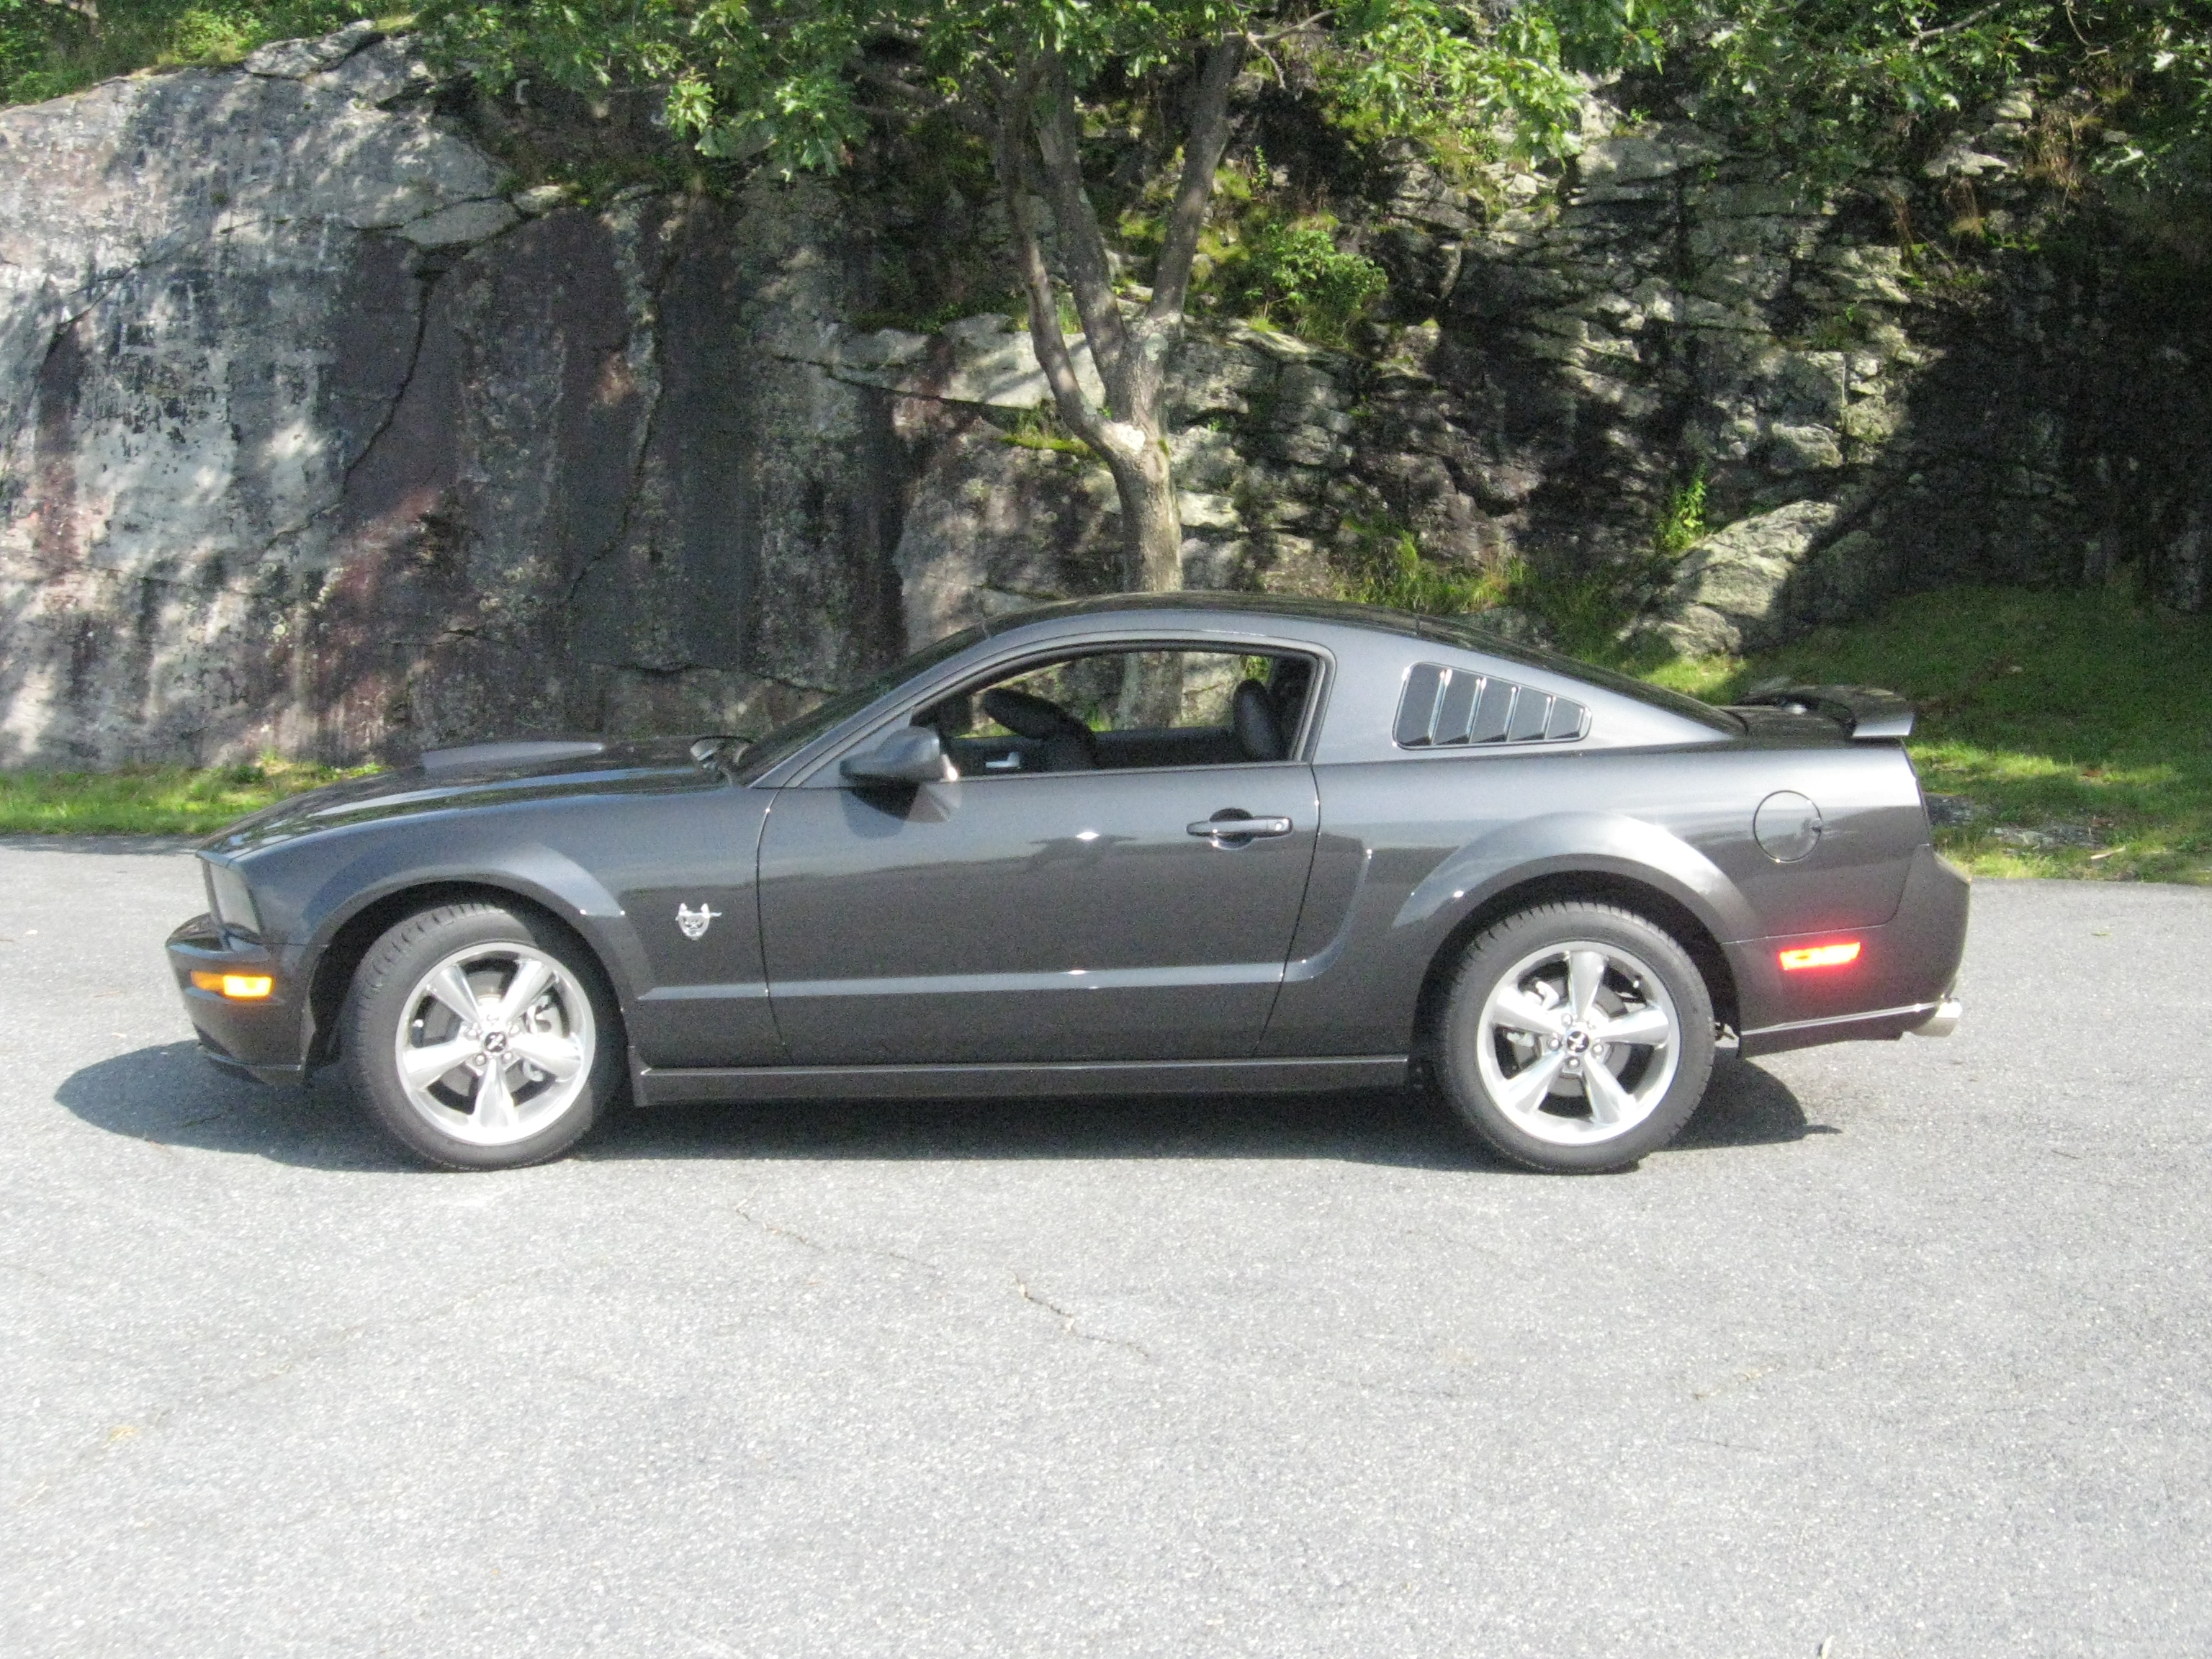 2009 Ford Mustang #3